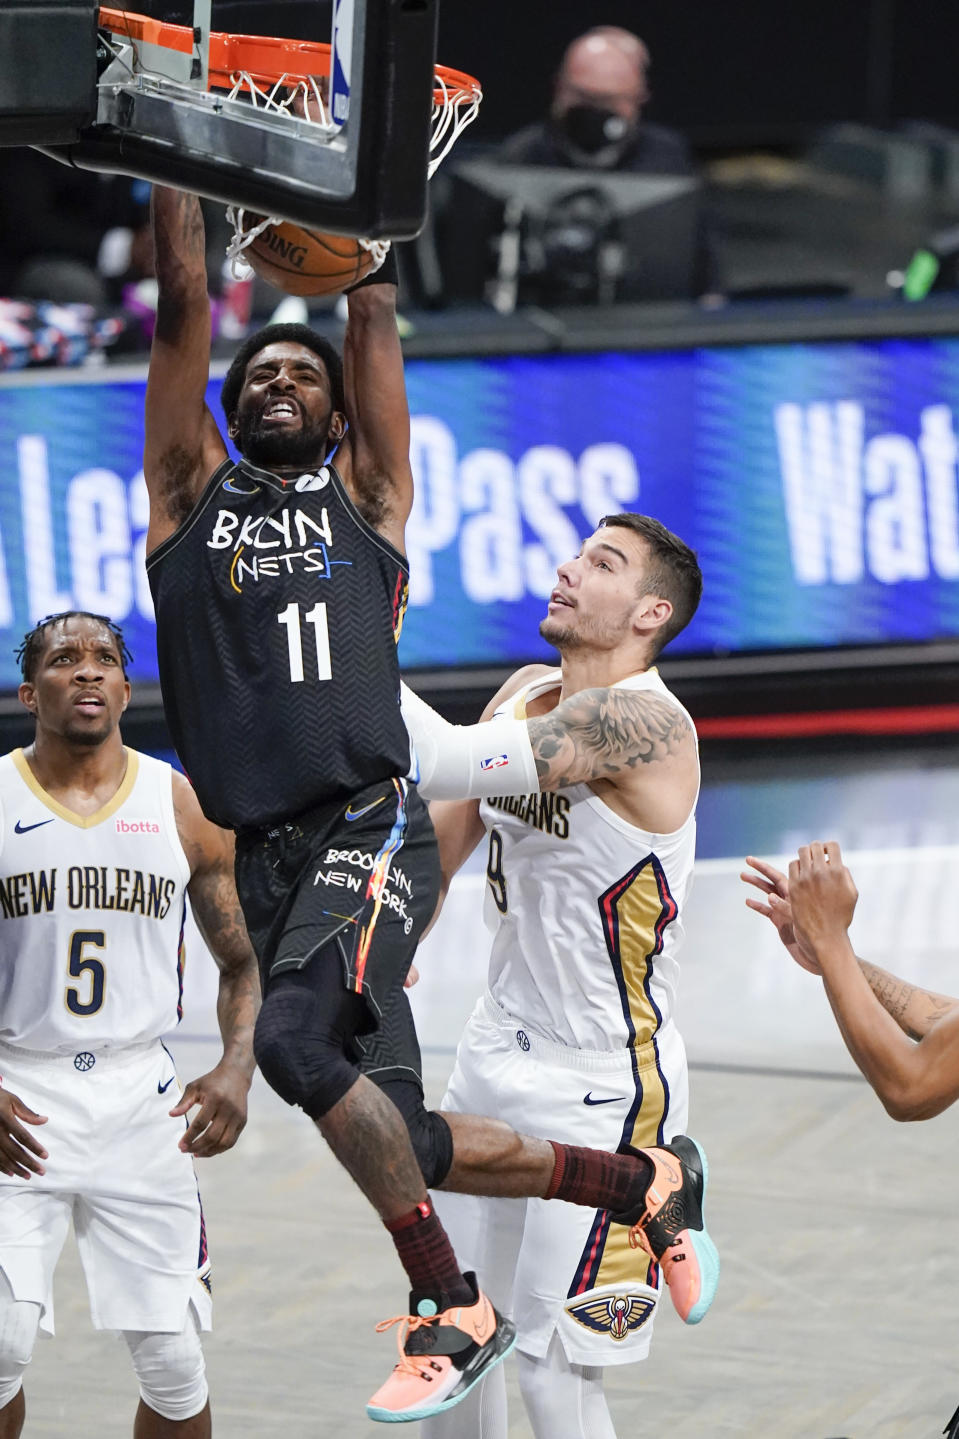 Brooklyn Nets' Kyrie Irving (11) dunks the ball in front of New Orleans Pelicans' Eric Bledsoe (5) and Willy Hernangomez (9) during the first half of an NBA basketball game Wednesday, April 7, 2021, in New York. (AP Photo/Frank Franklin II)